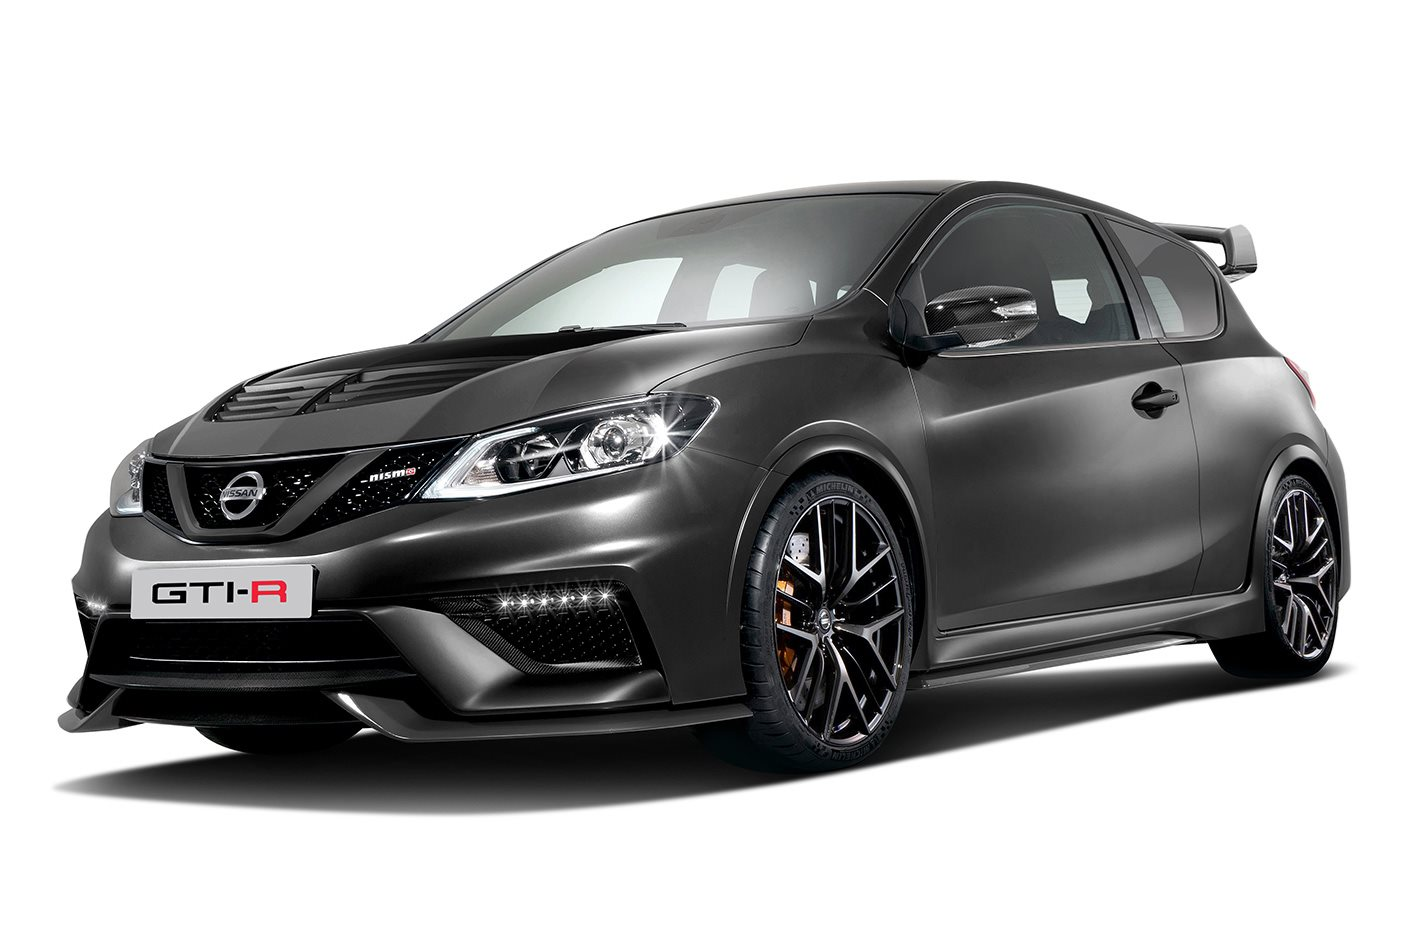 nissan pulsar gti r sweet dream. Black Bedroom Furniture Sets. Home Design Ideas